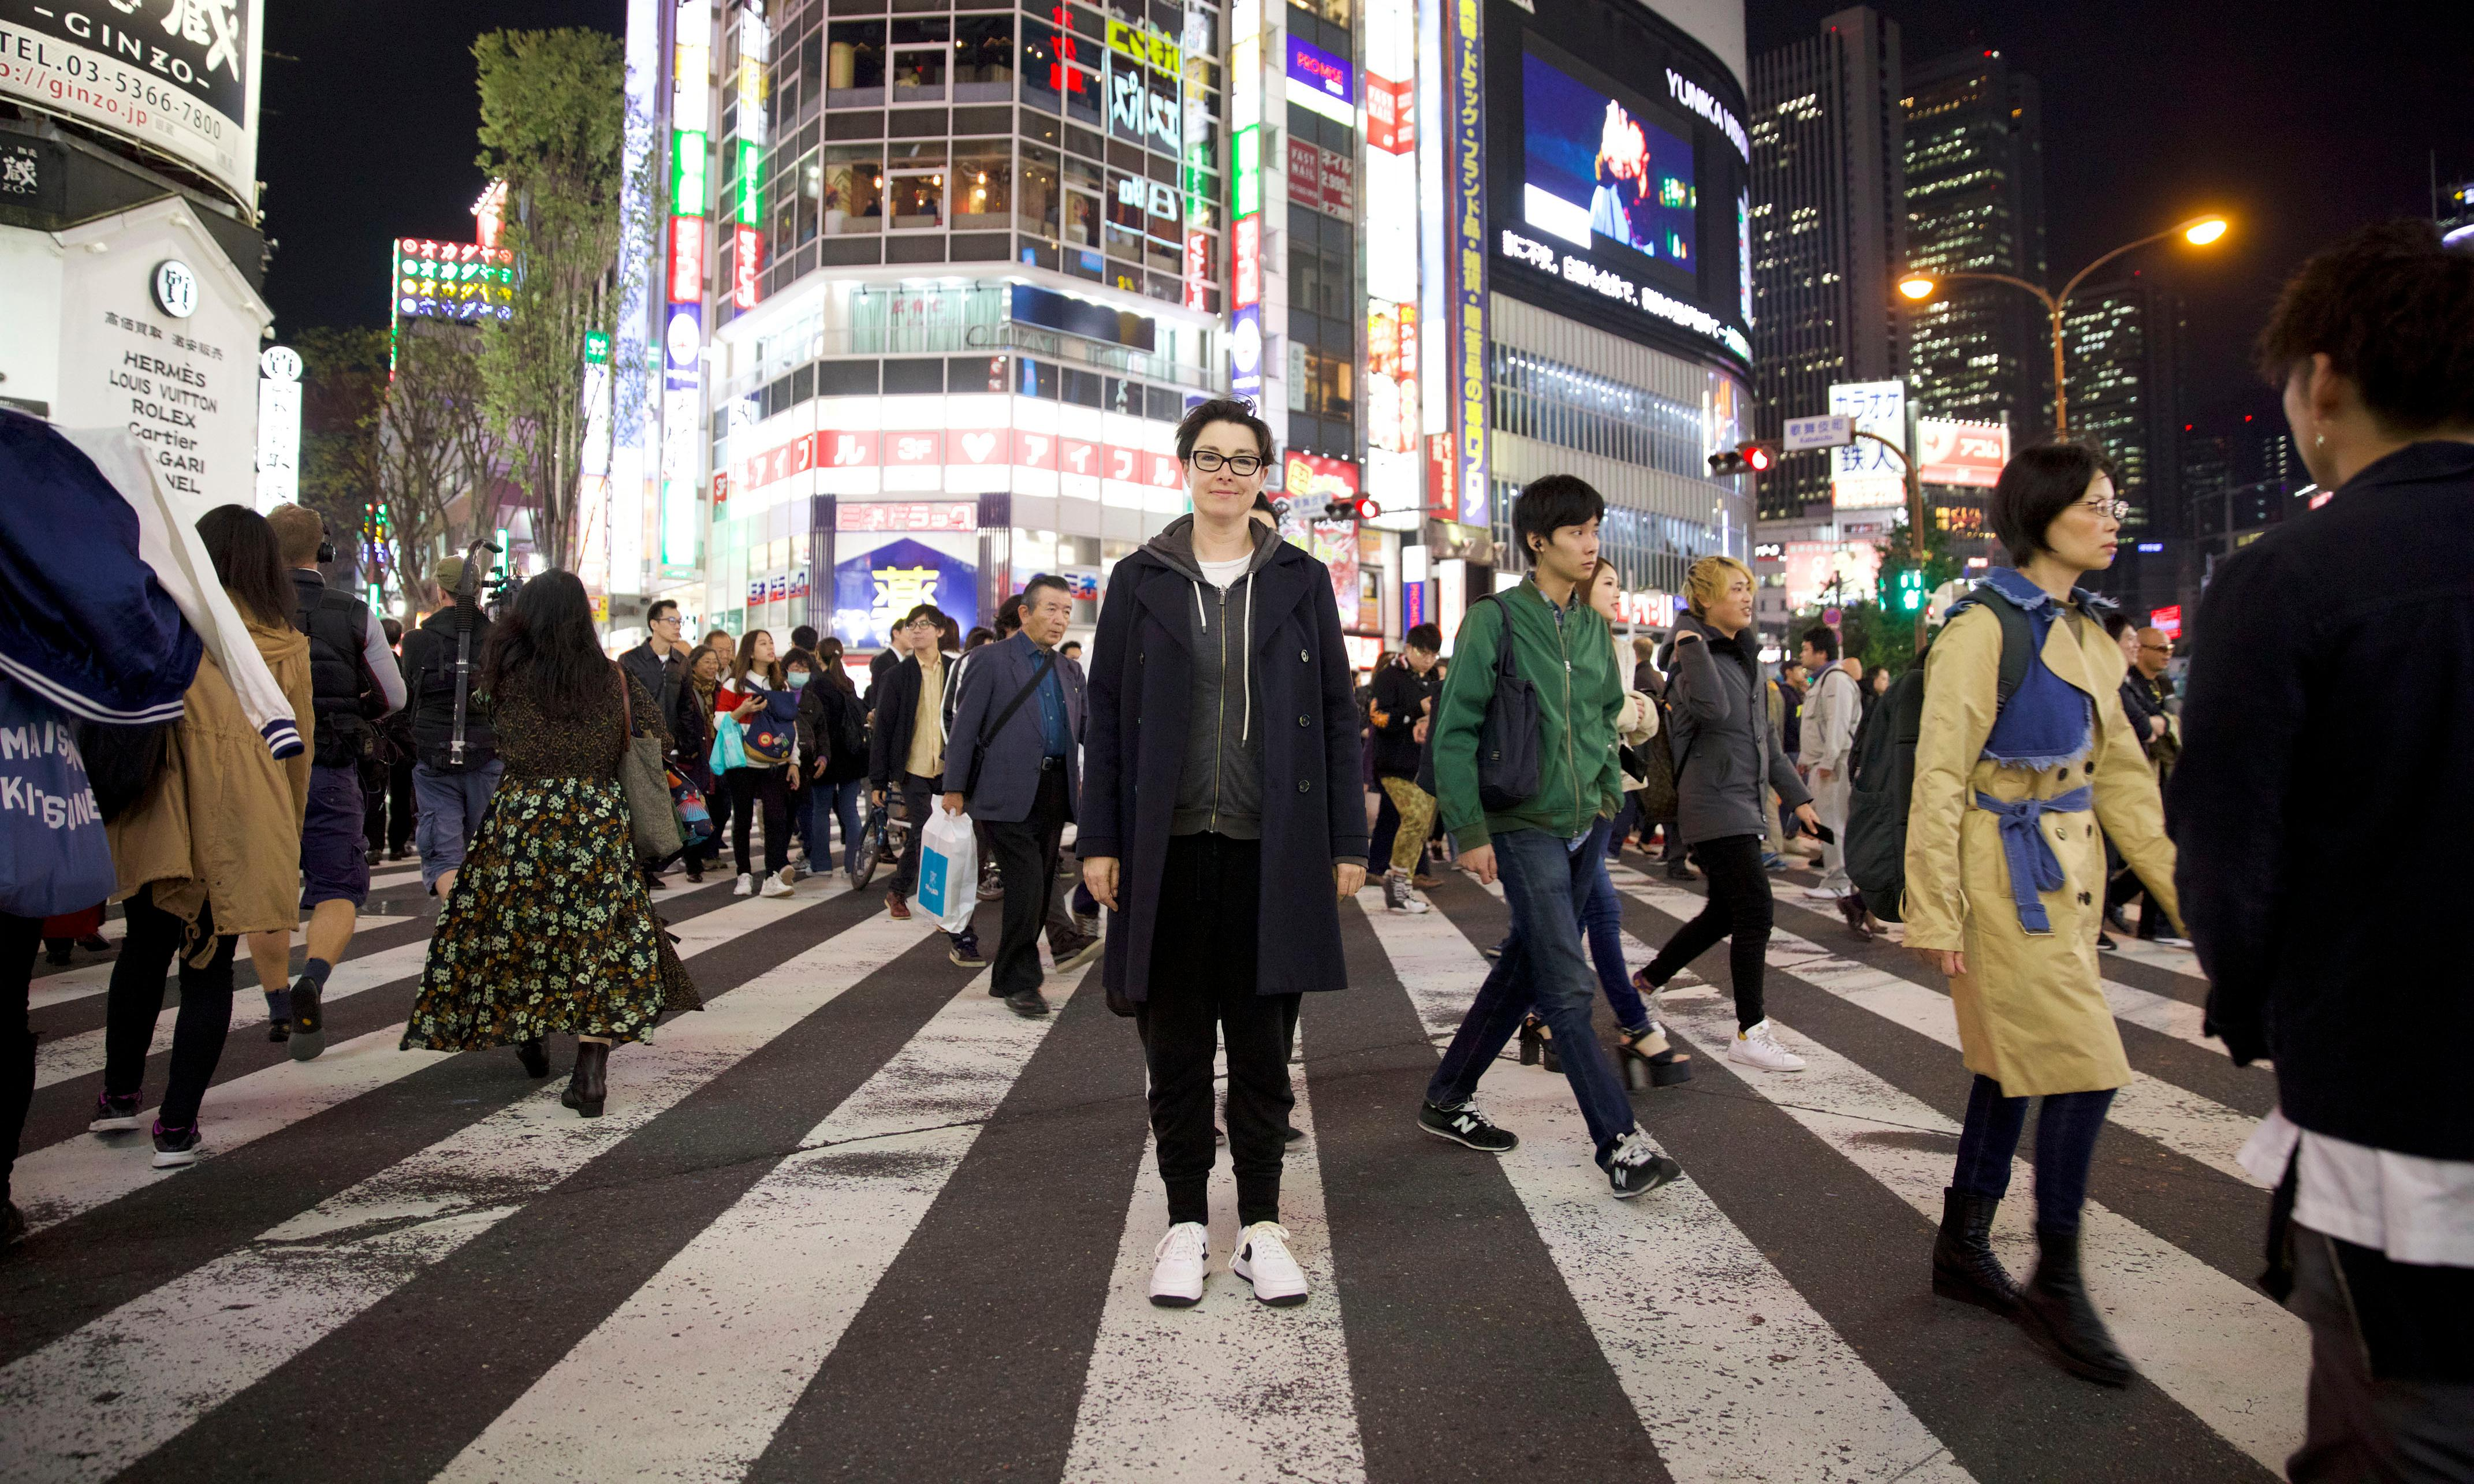 TV tonight: Sue Perkins heads to Japan for a spot of sumo training